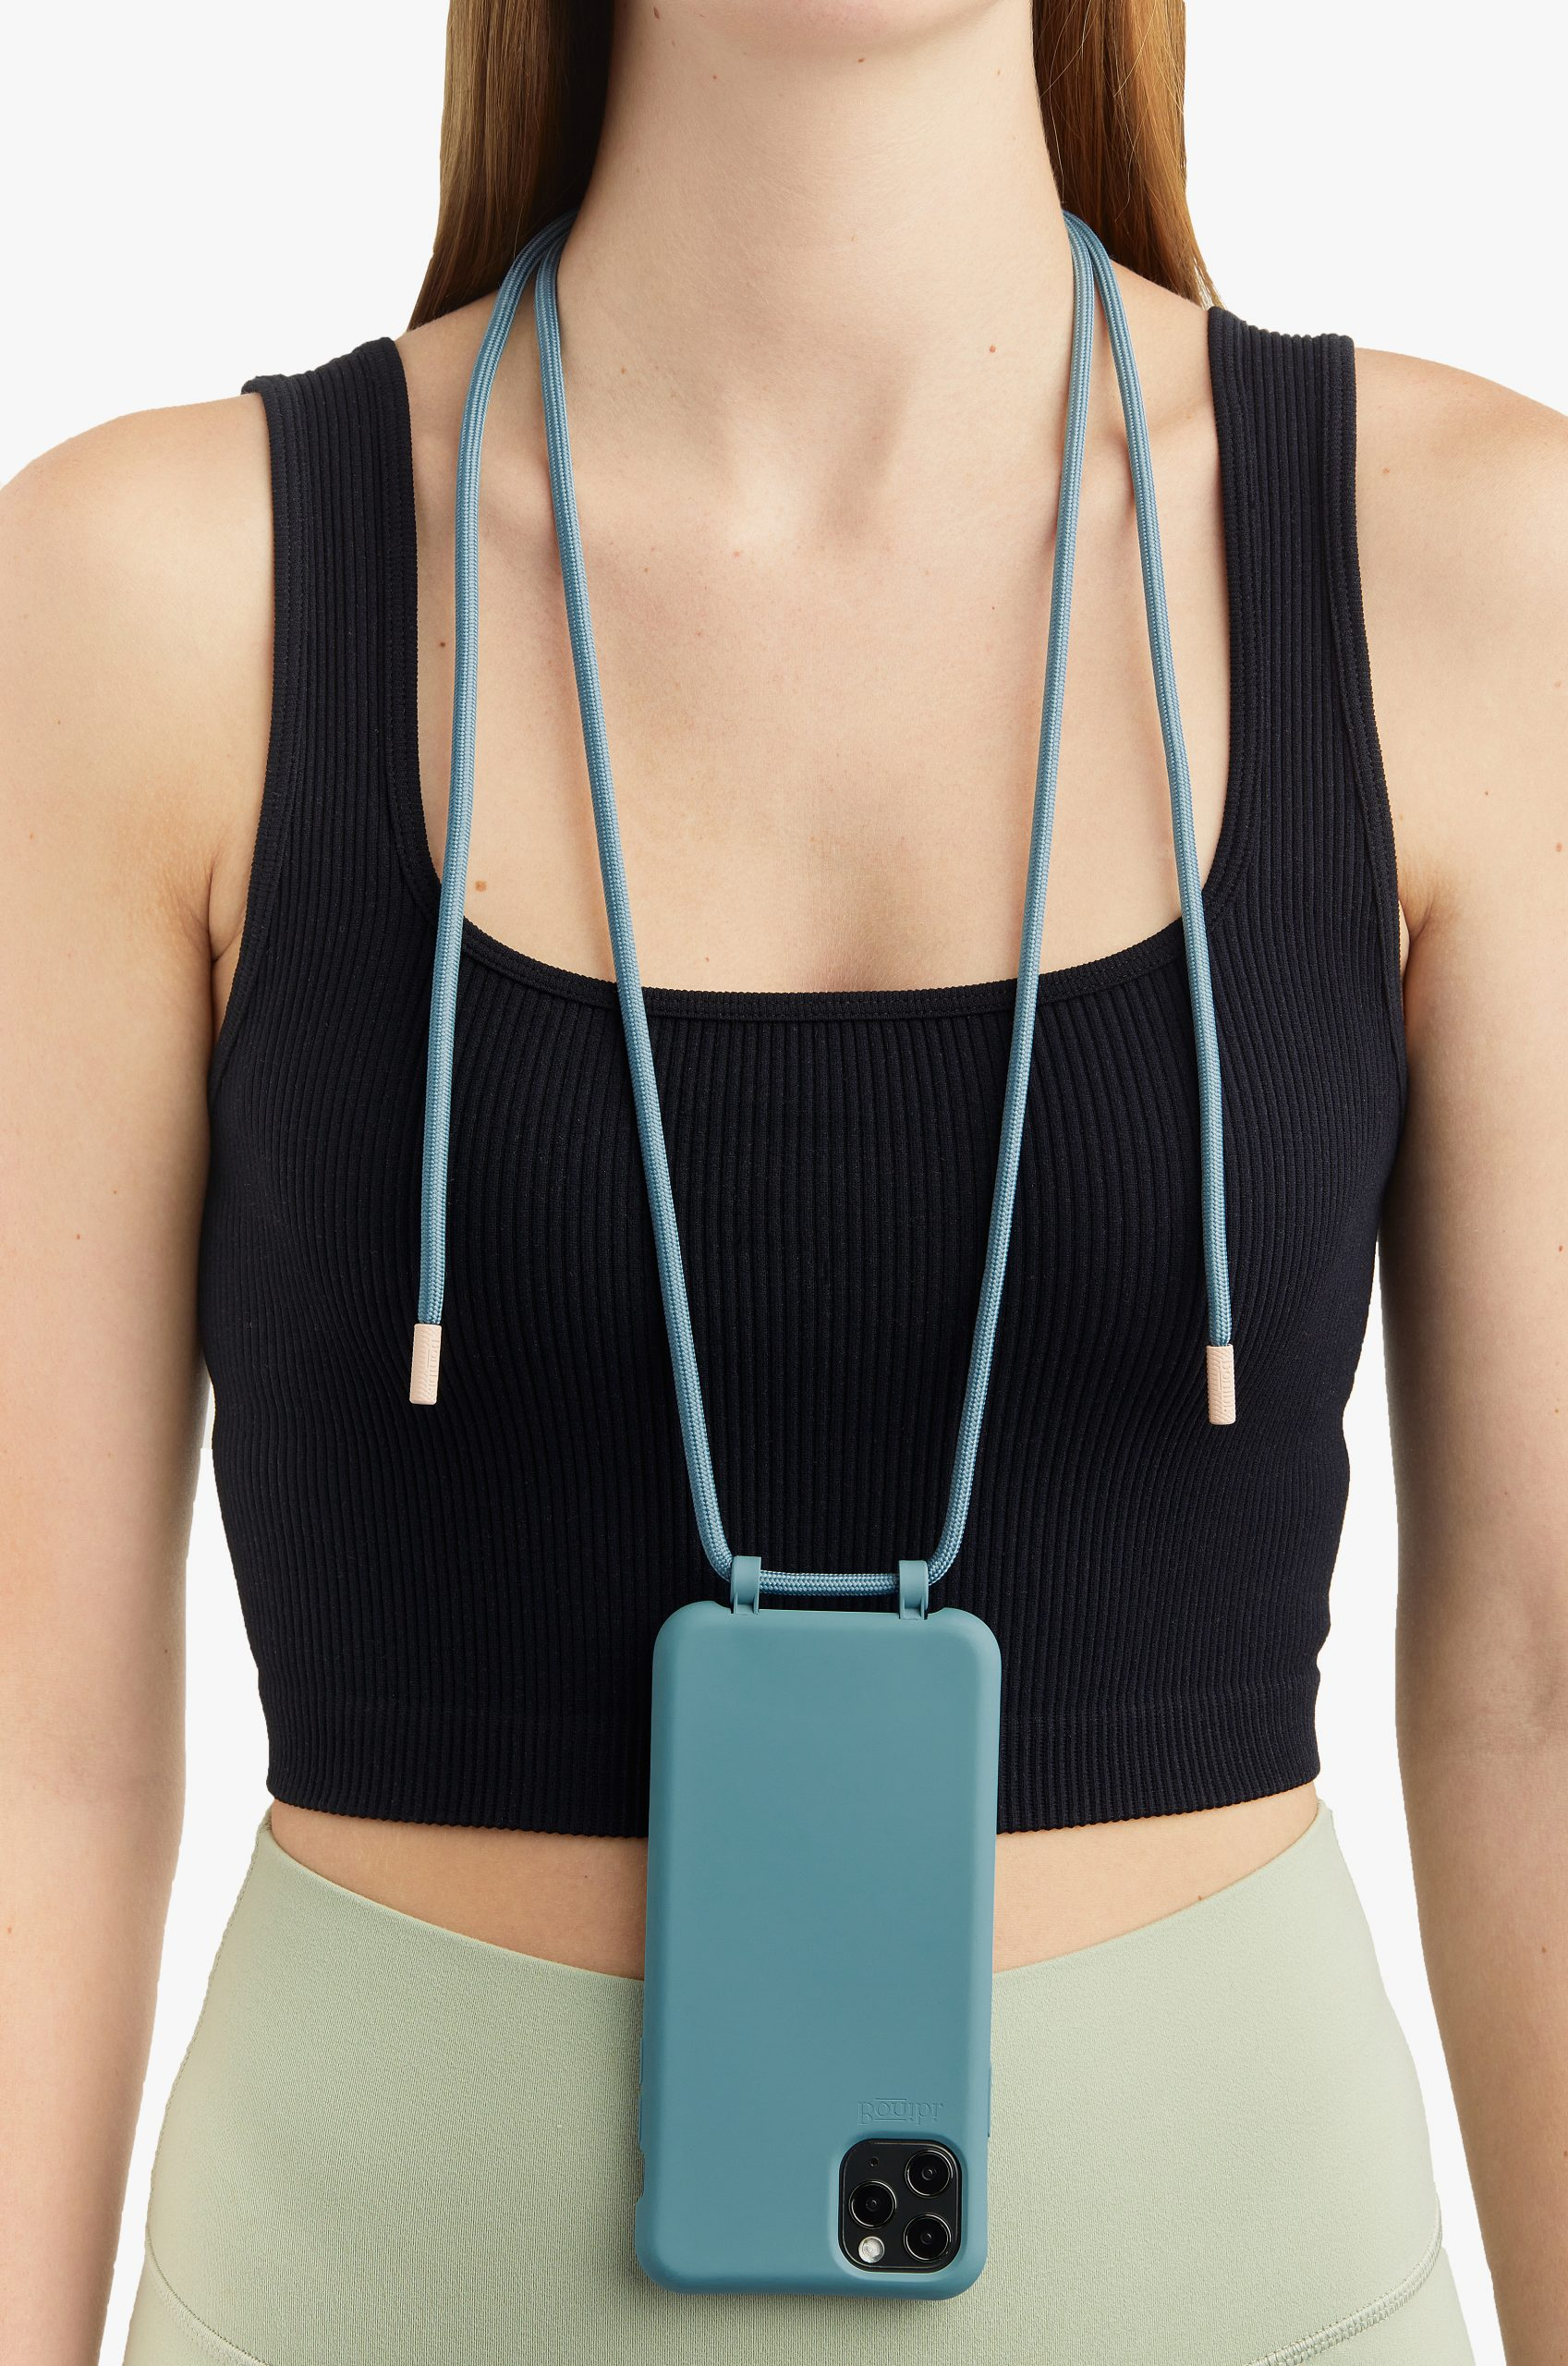 Bonibi-Crossbody-Phone-Case-iPhone-Pine-Case-Pine-Cord-Pink-Dust-Hardware-Necklace-Lanyard-Lifestyle-Phone-Case-With-Strap-Neck Holder-Card Holder-Tether-Carrier-Functional